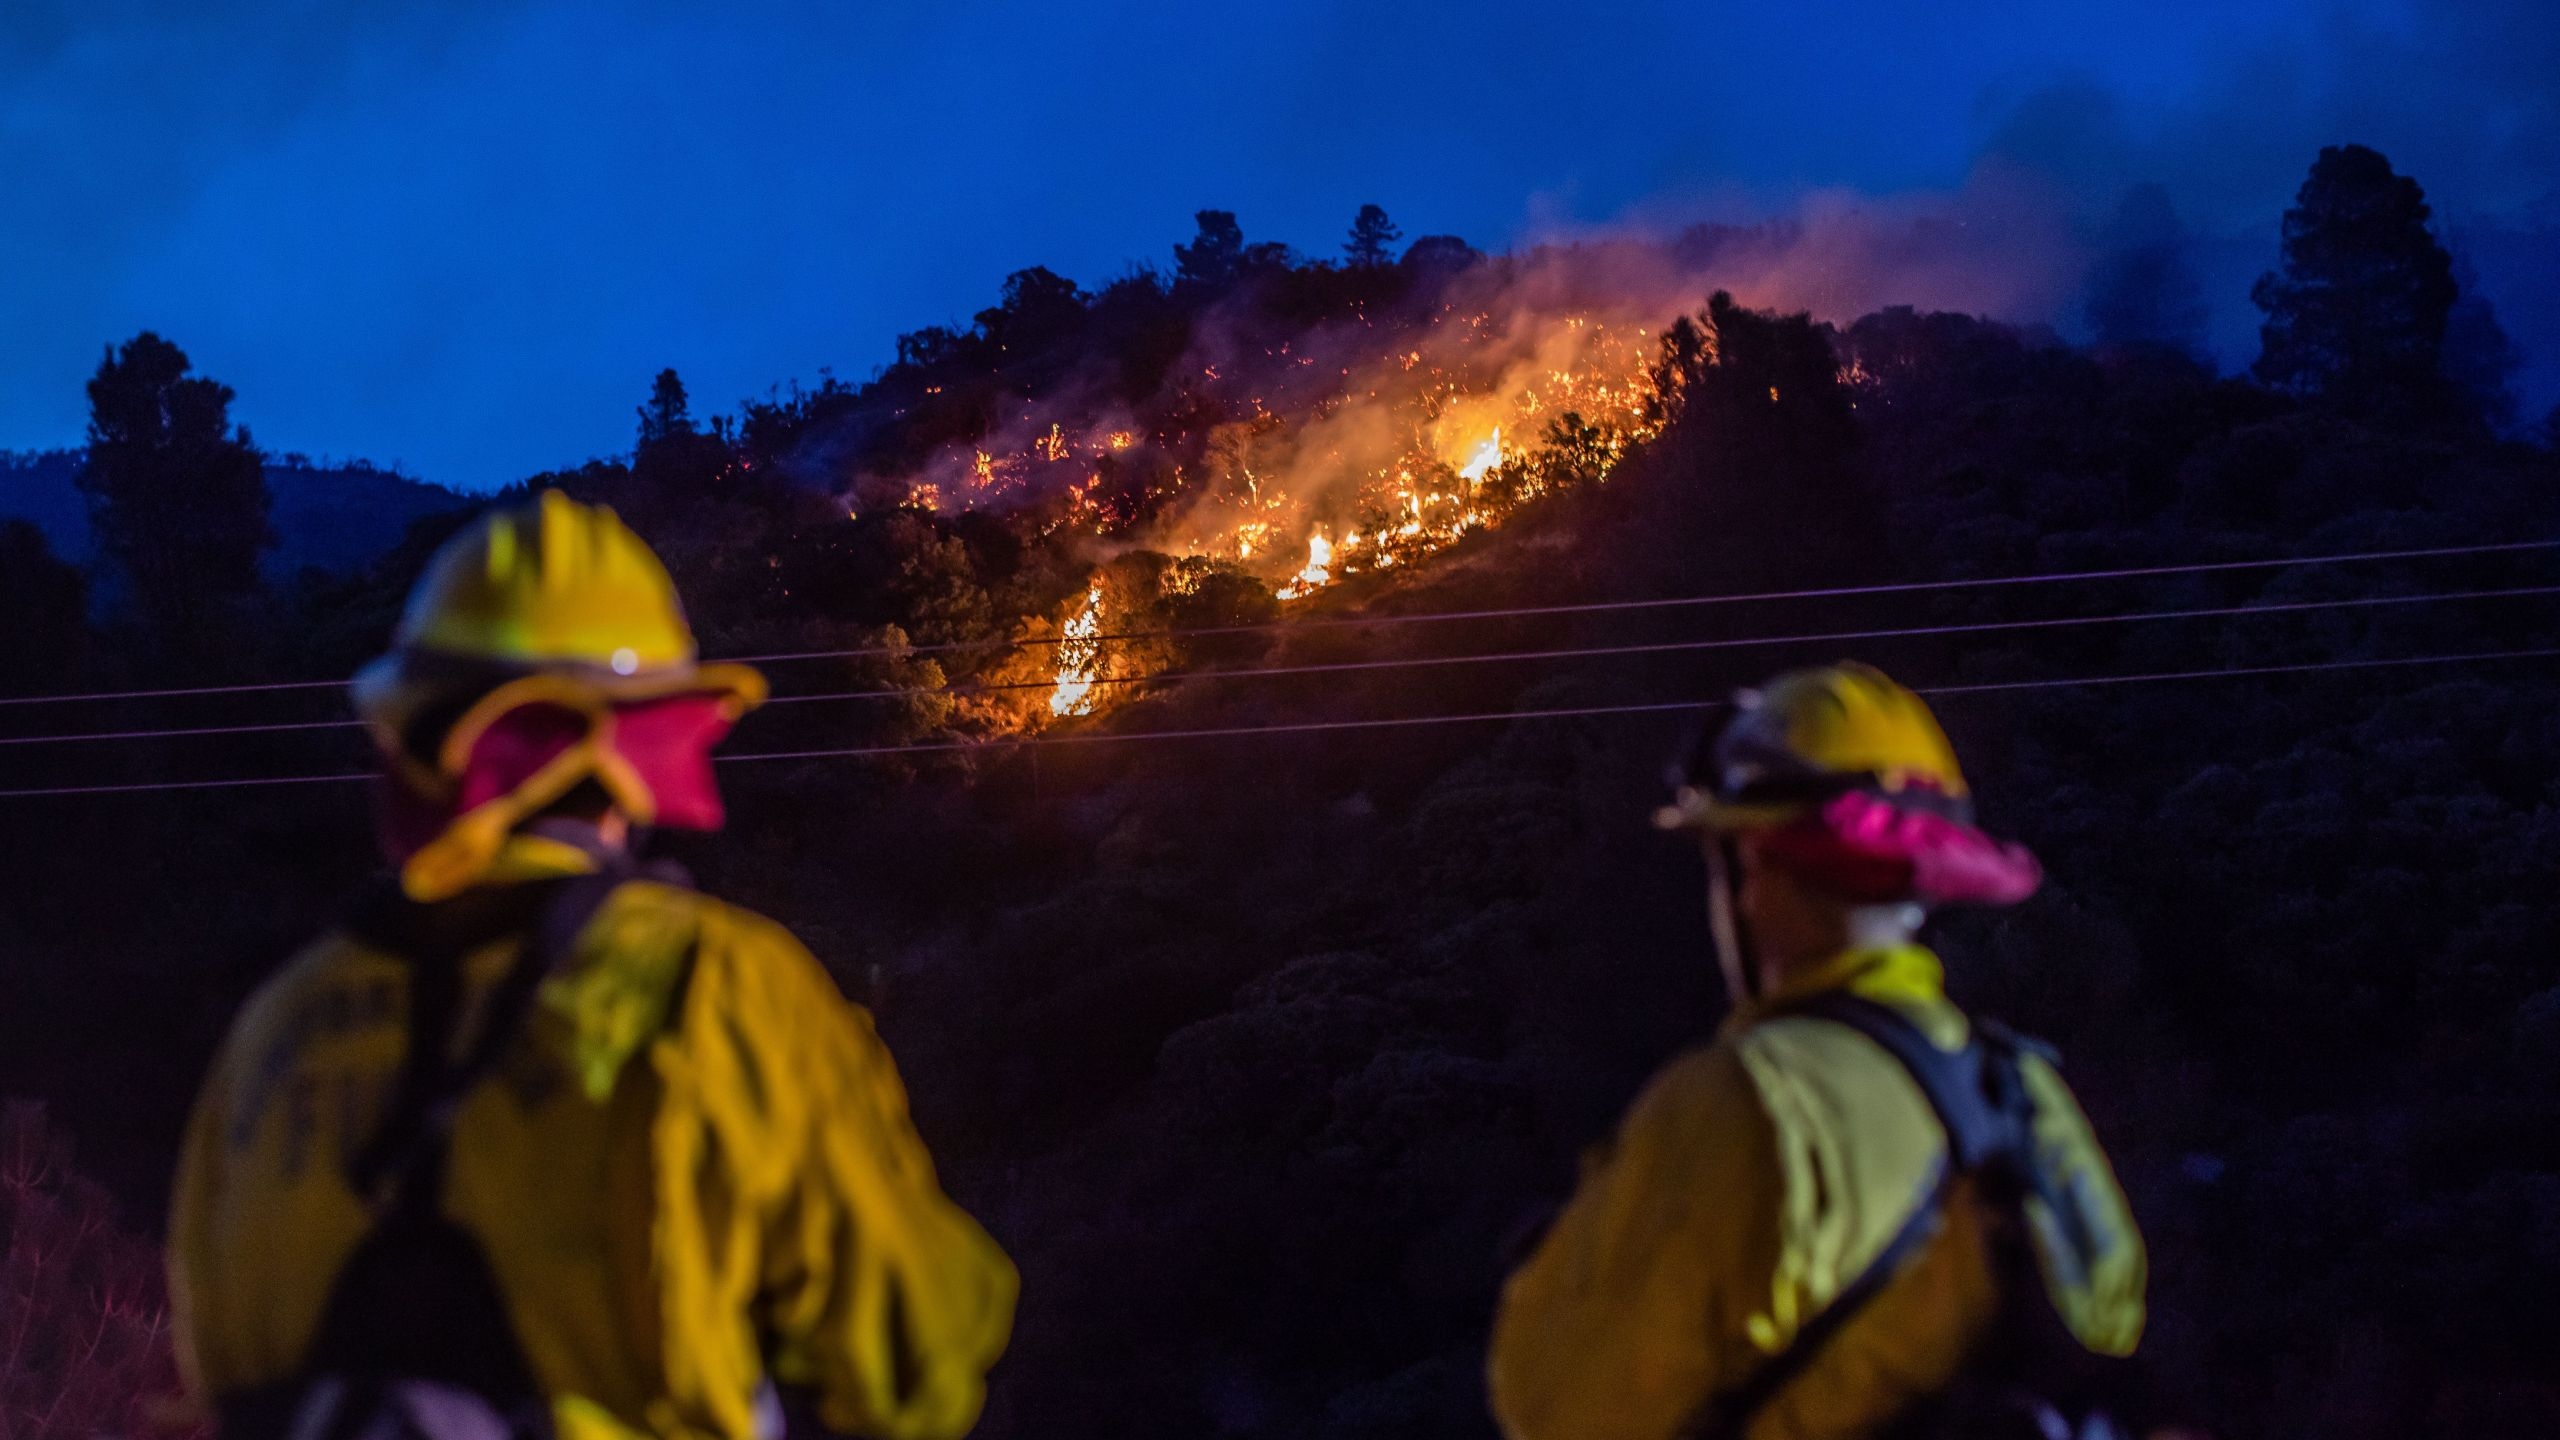 Firefighters work to extinguish hotspots from the Lake Fire at Pine Canyon Road in the Angeles National Forest, by Lake Hughes, 60 miles north of Los Angeles, California on Aug. 13, 2020. (APU GOMES/AFP via Getty Images)